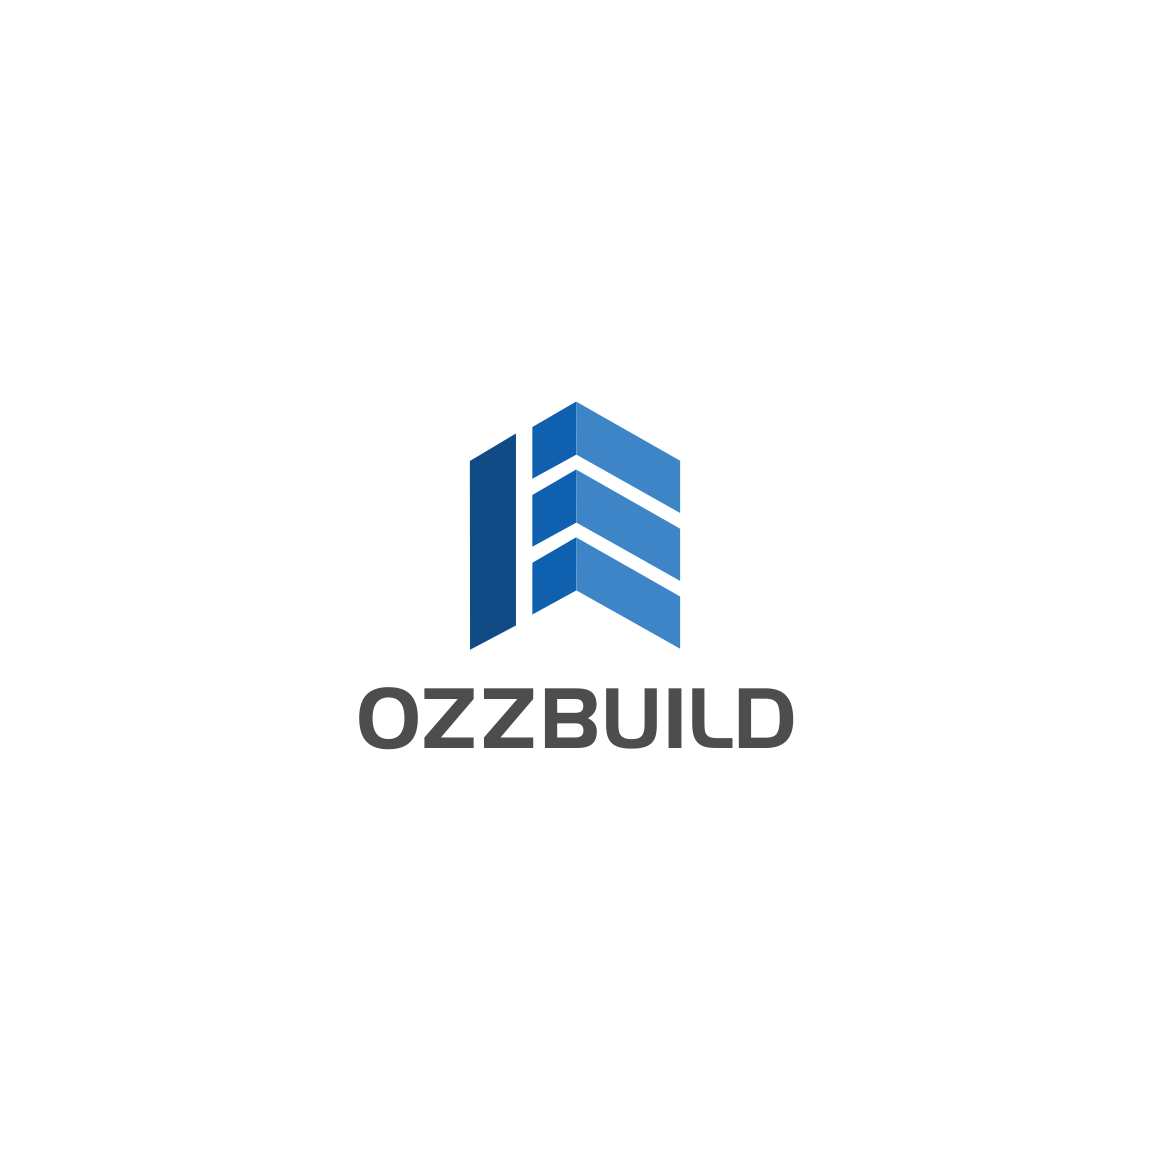 serious modern logo design for ozzbuild by susanto83